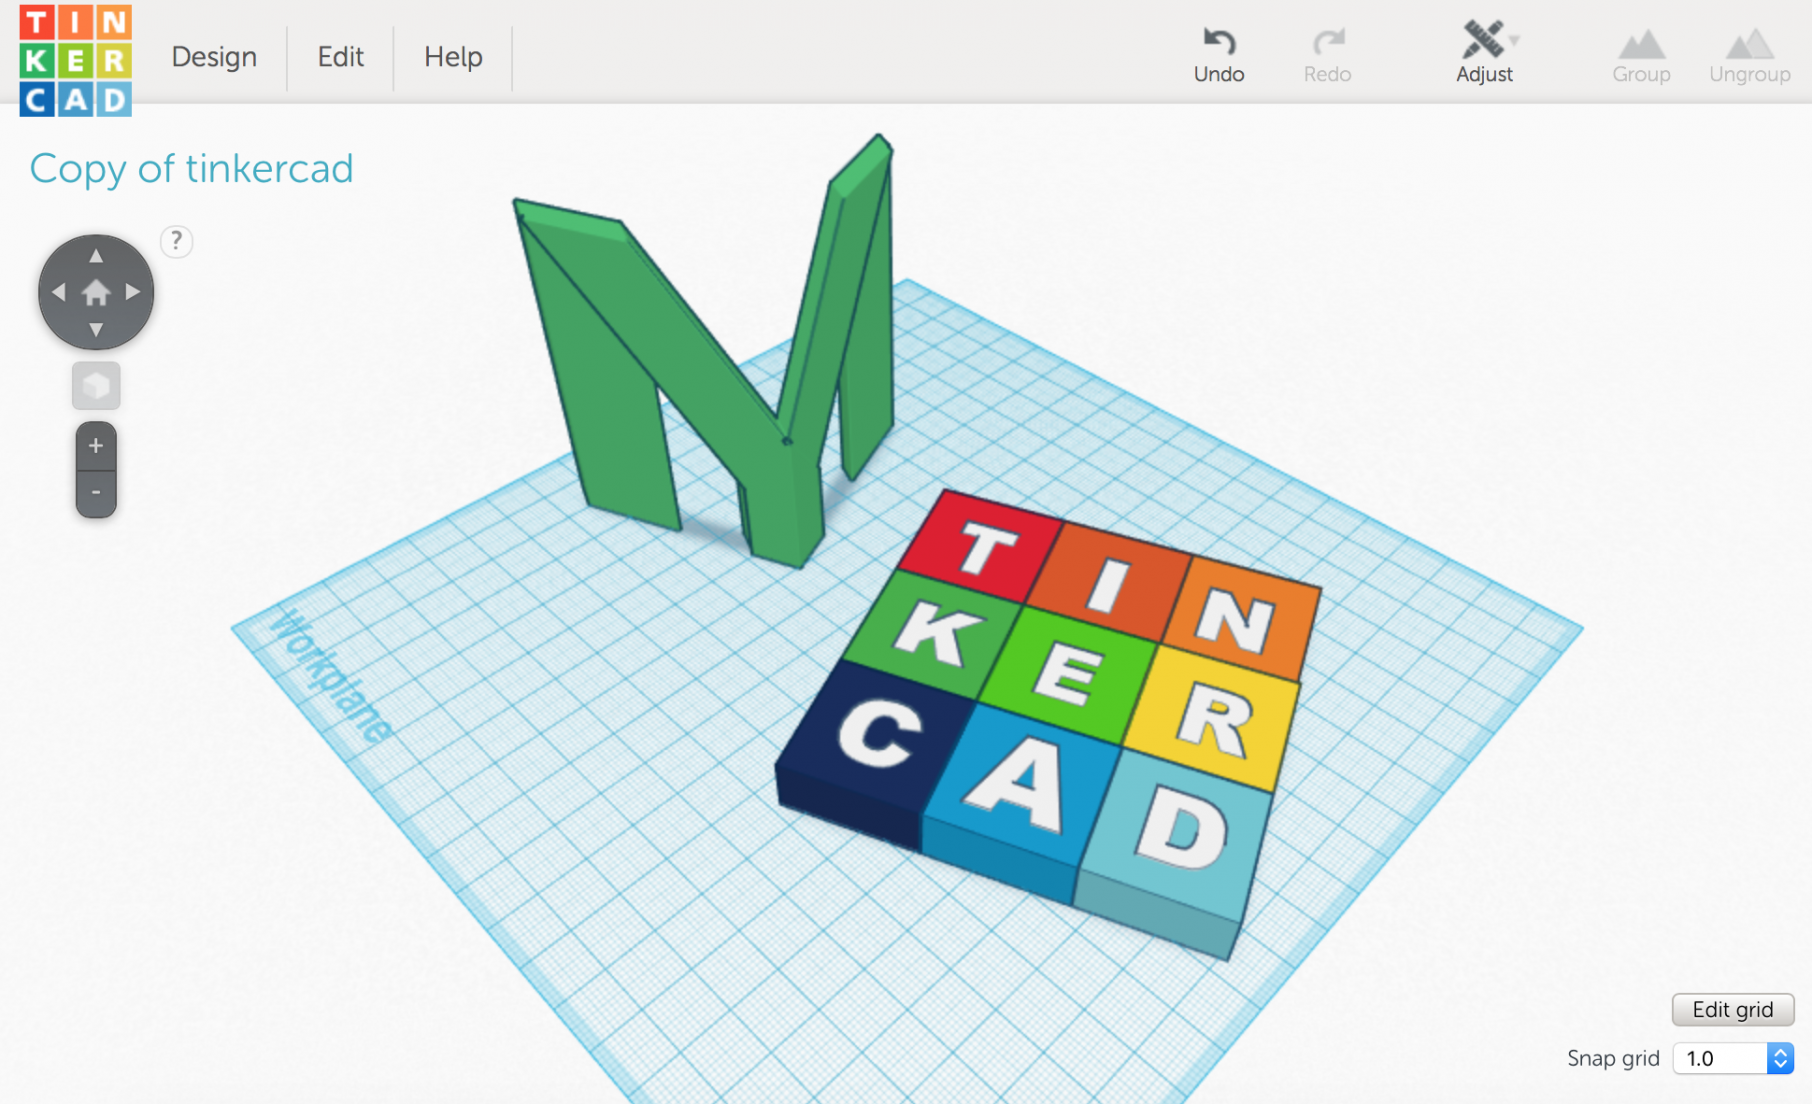 3d models of myminifactory and tinkercad logos in tinkercads build area mmf 3d logo by michael daniel miller and tinkercad by dikraa12